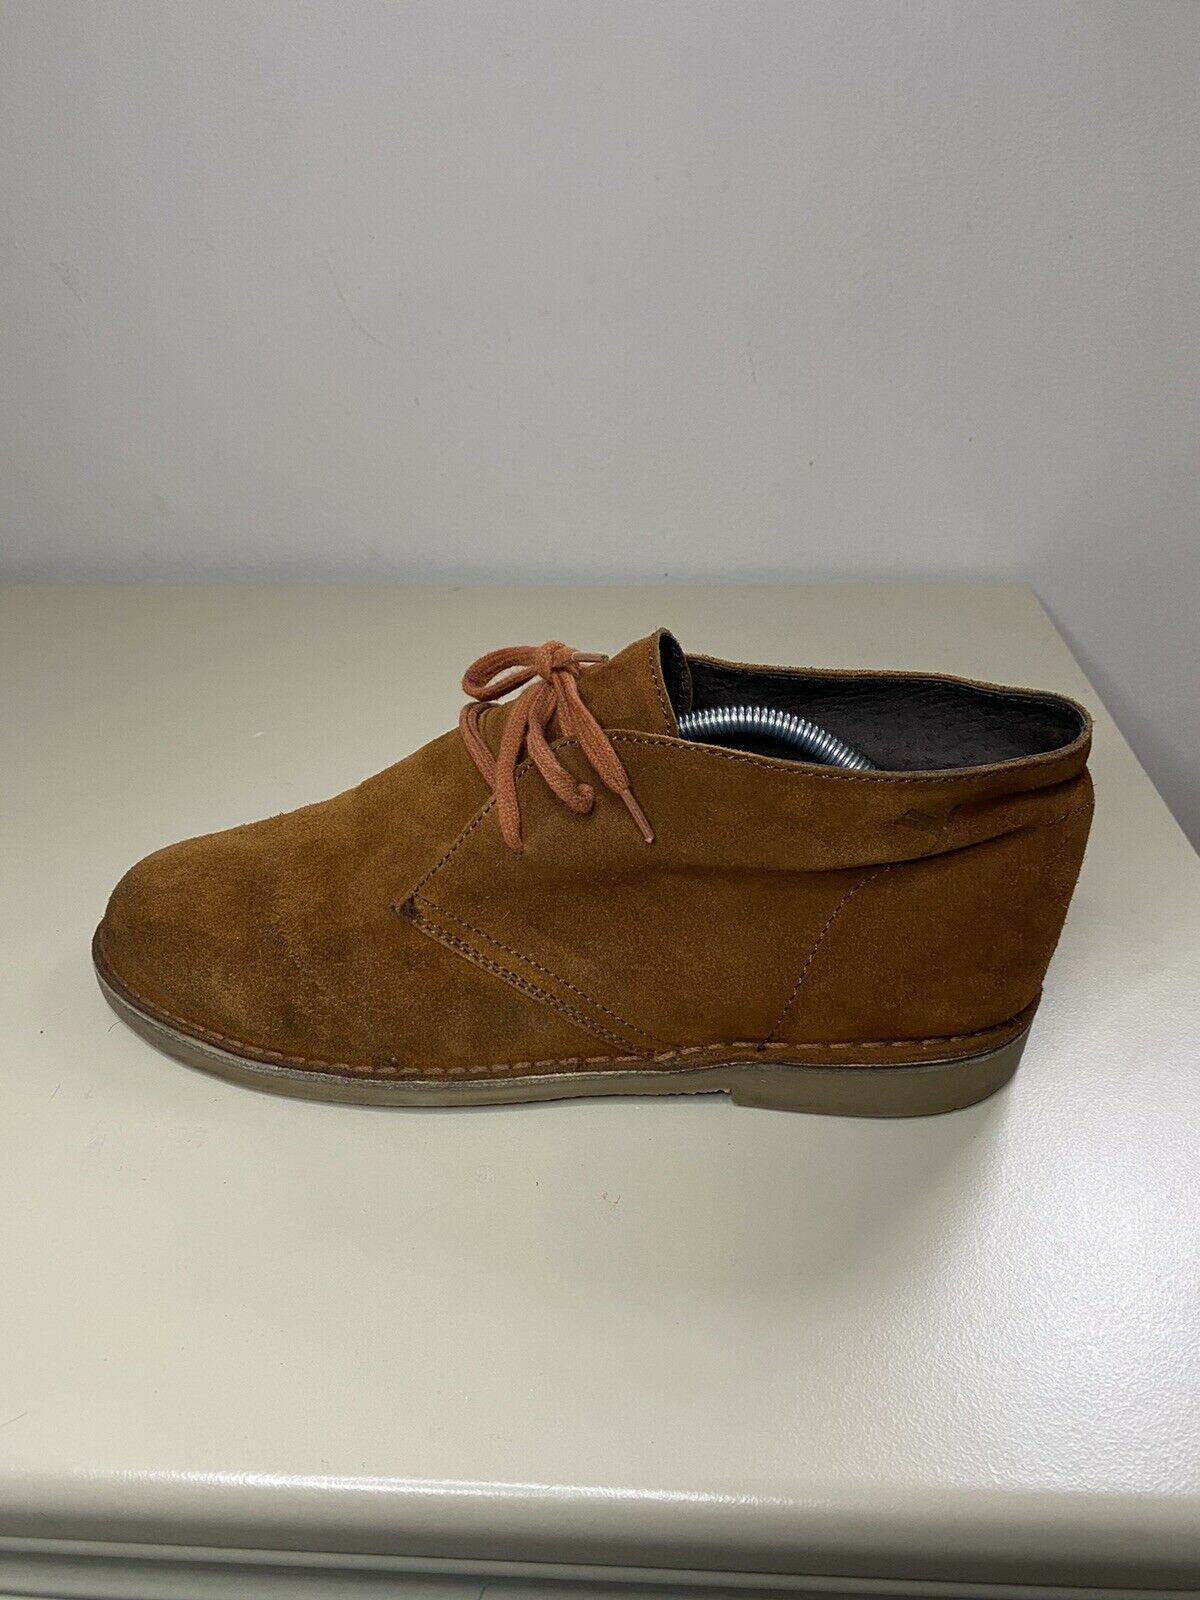 Desert Suede Boots - Size 9